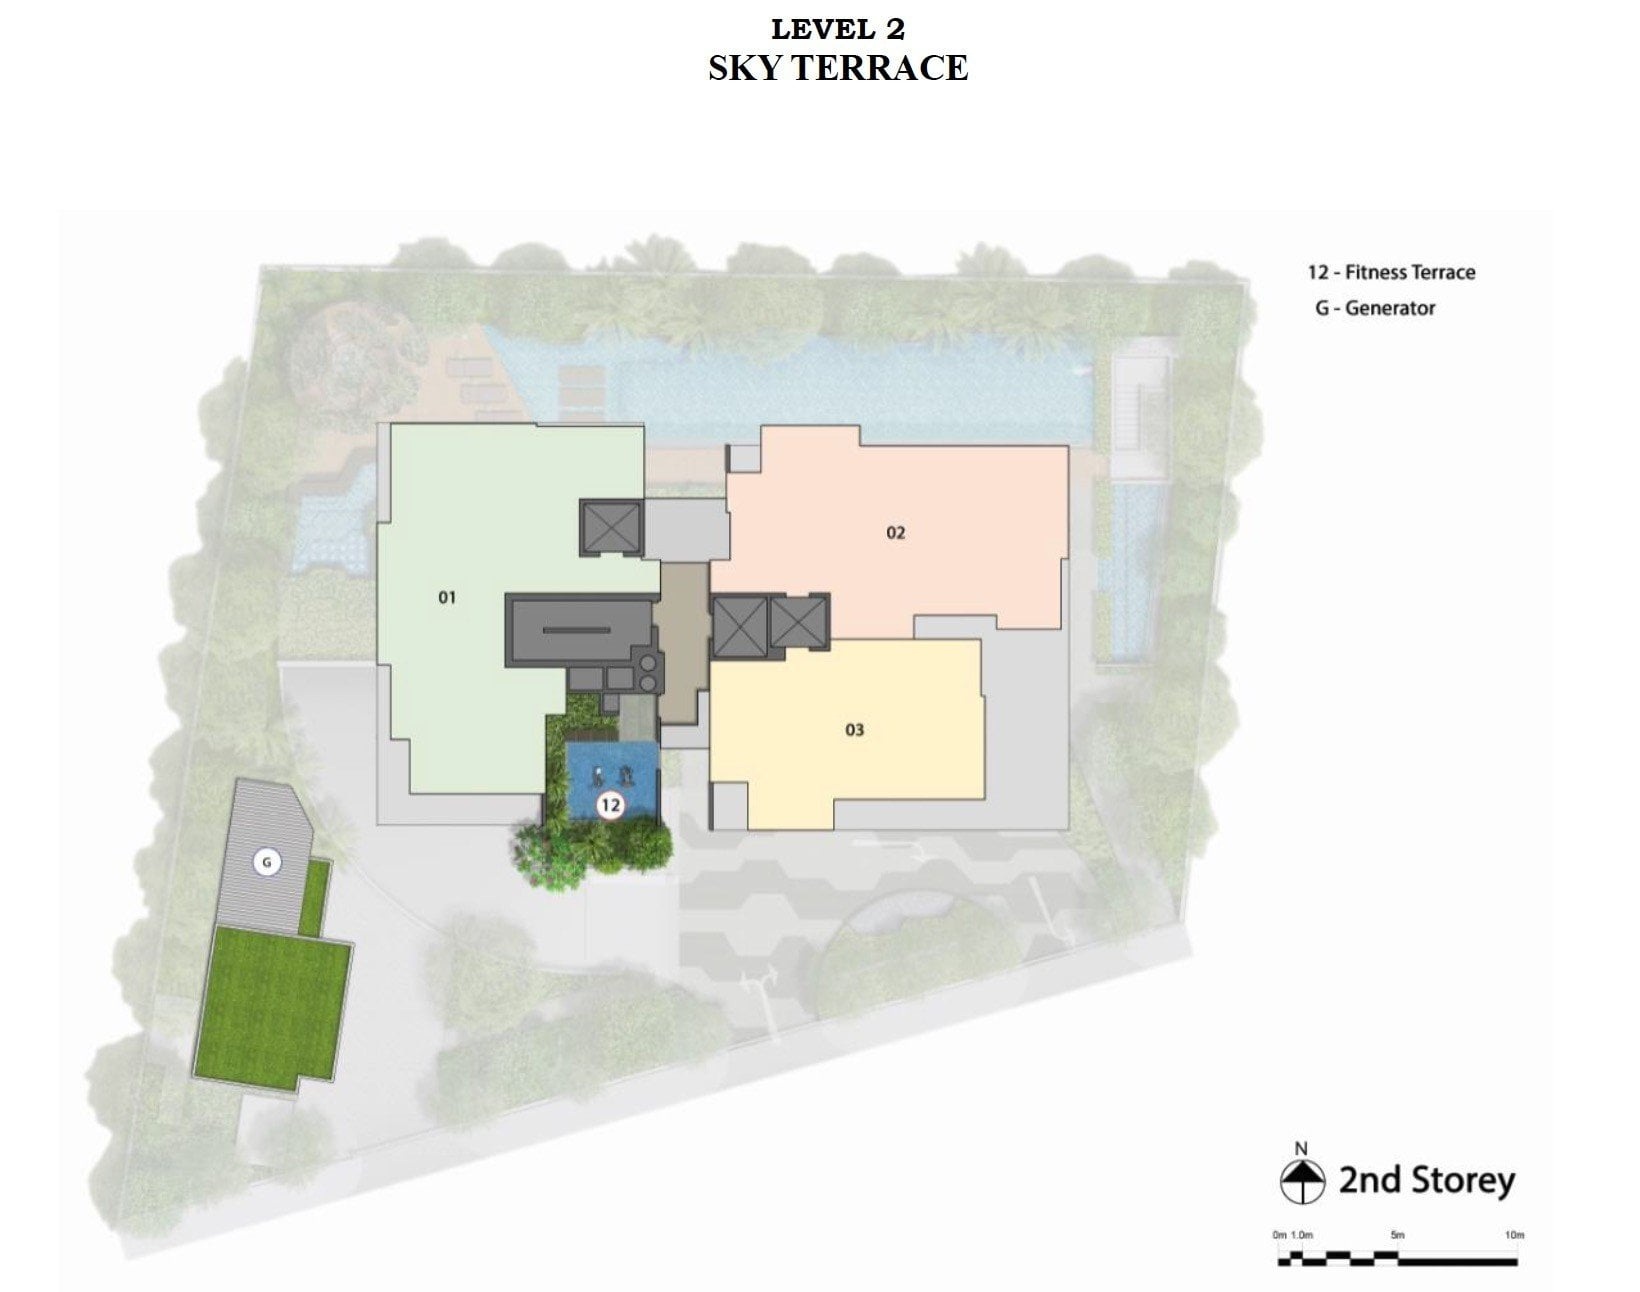 Cairnhill-16-Orchard Site Plan Level 2